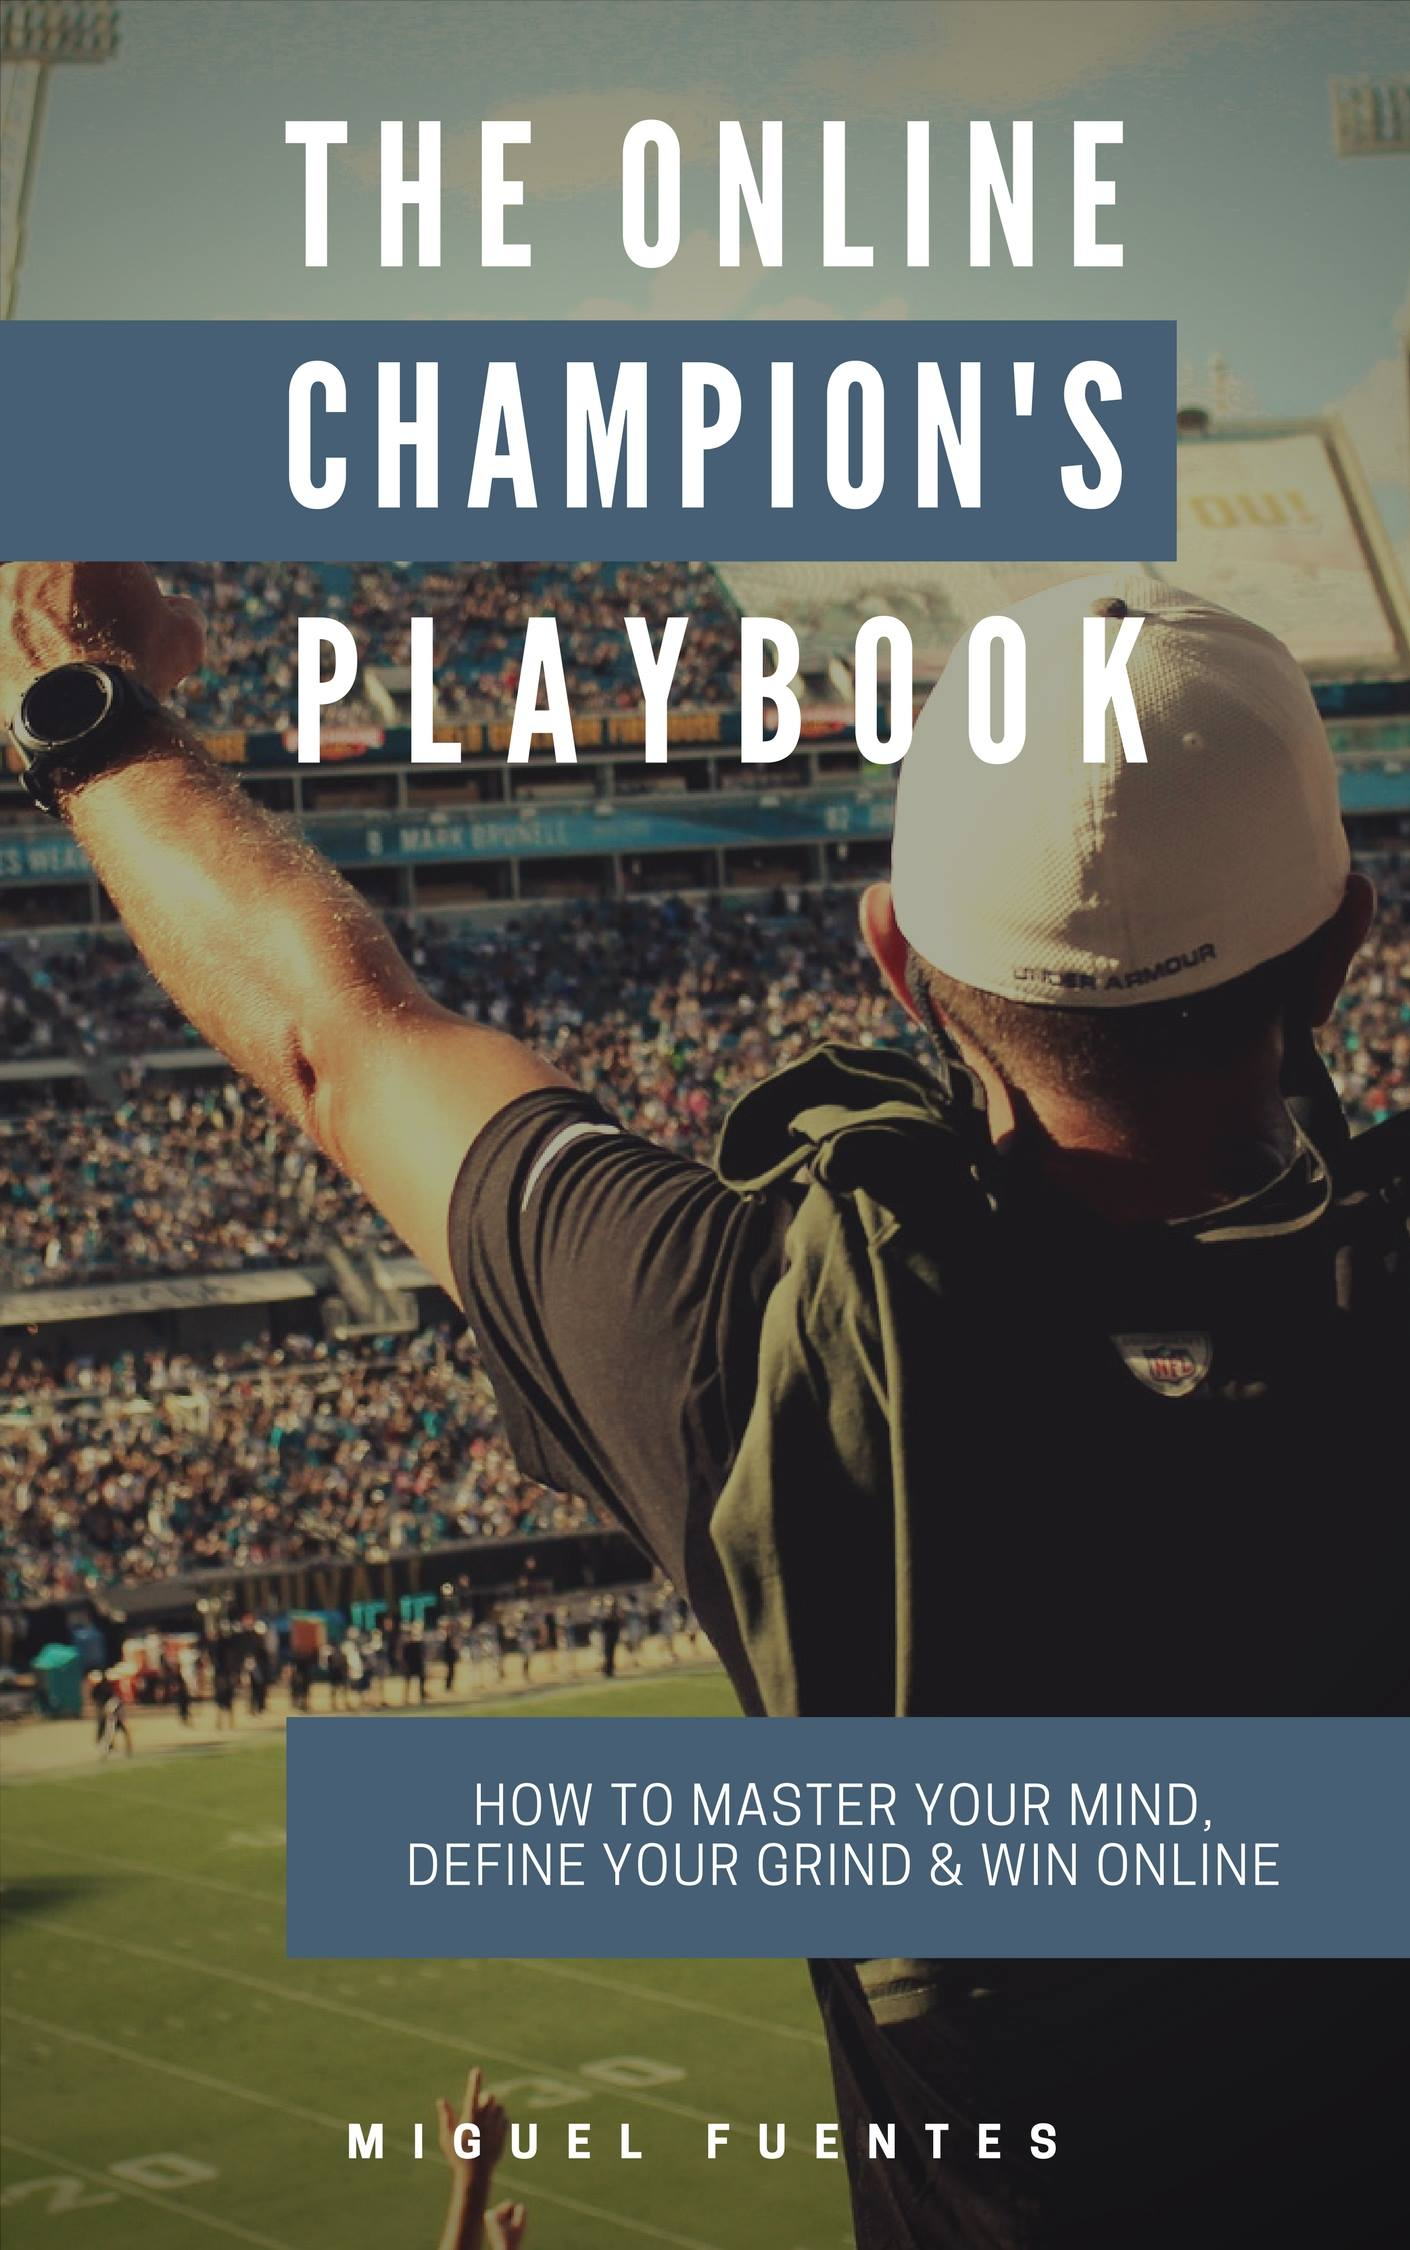 Champions Playbook Image